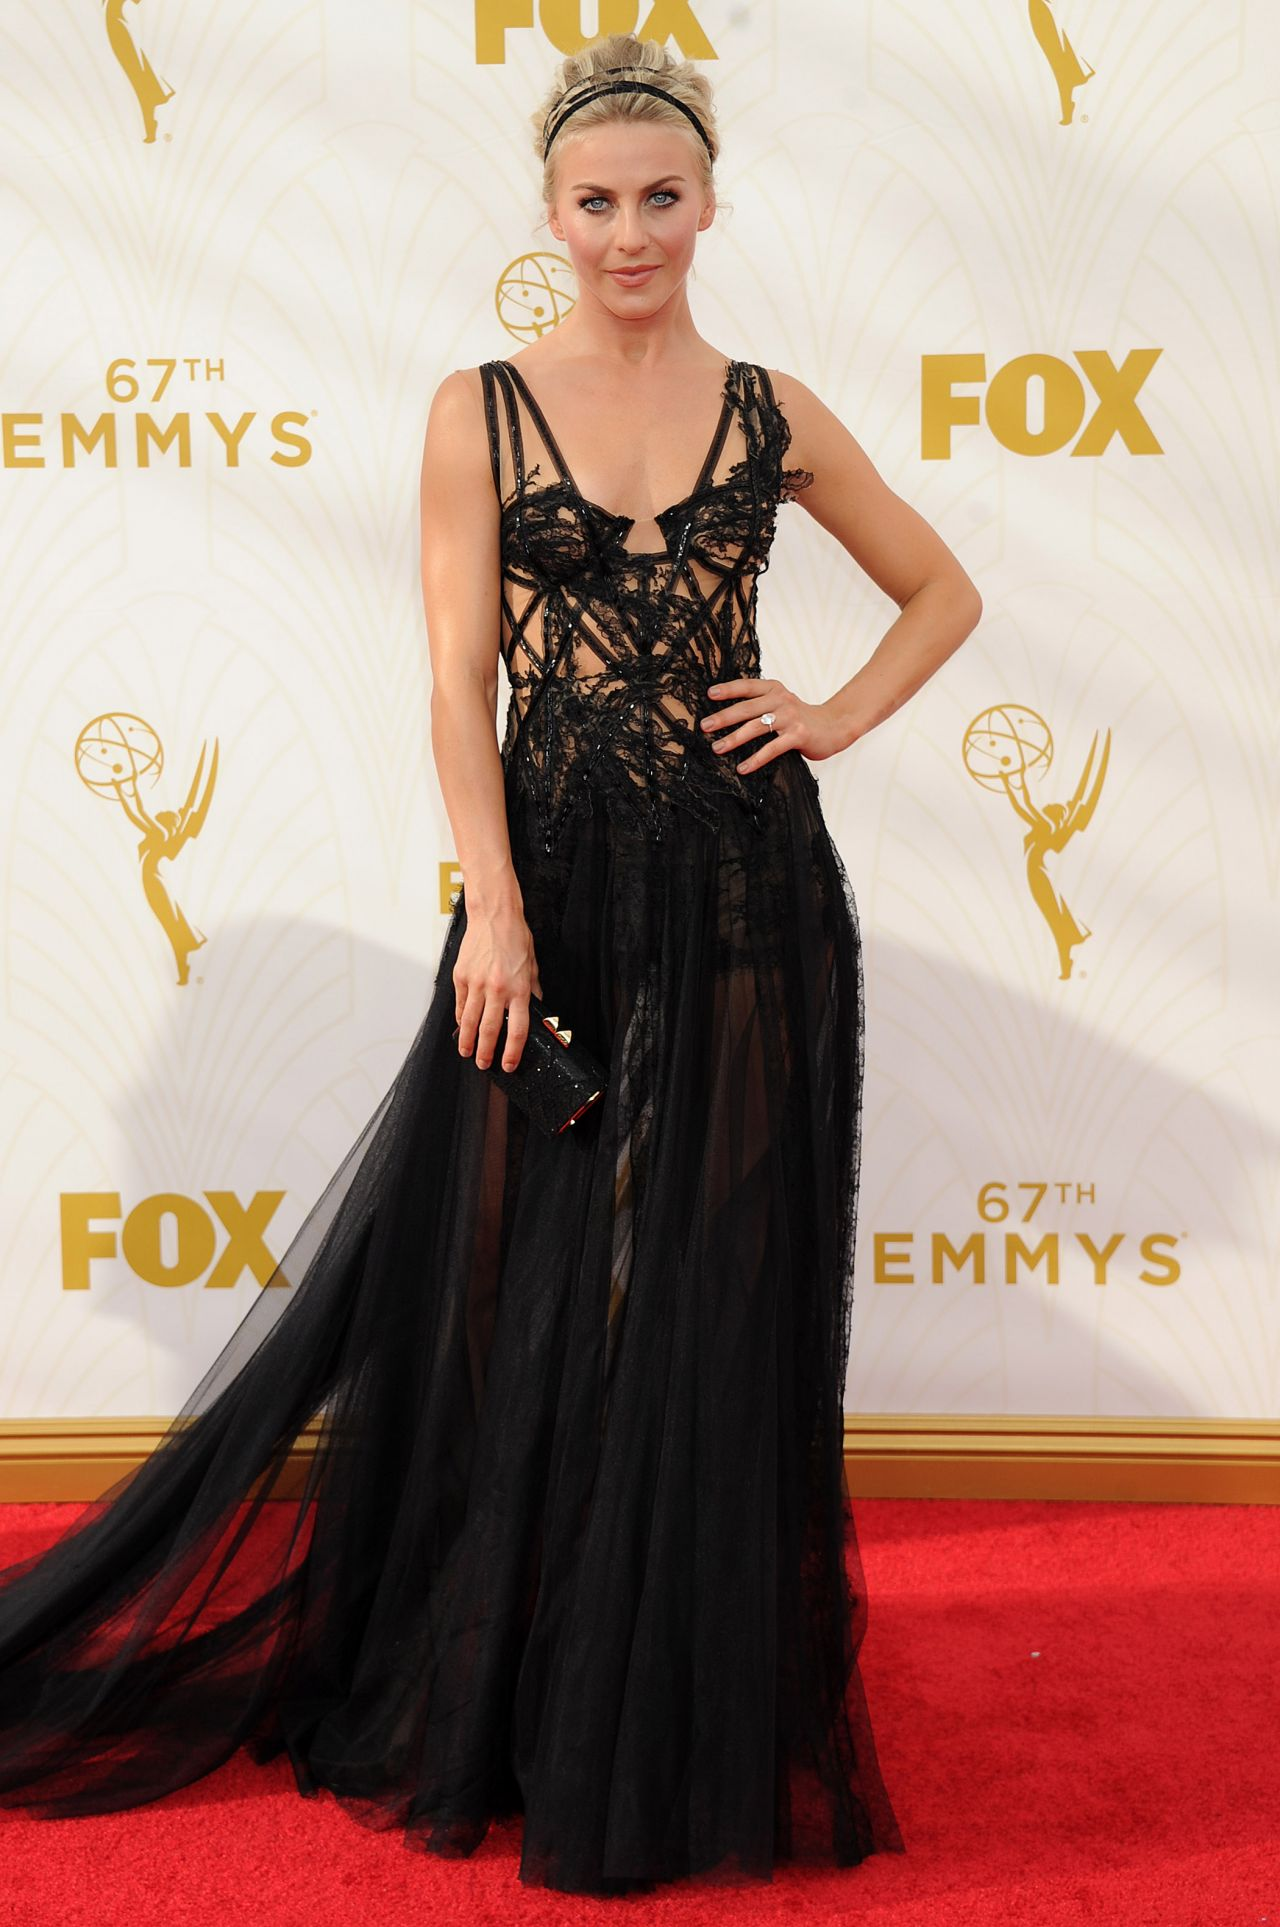 julianne-hough-on-red-carpet-2015-primetime-emmy-awards-in-los-angeles_1